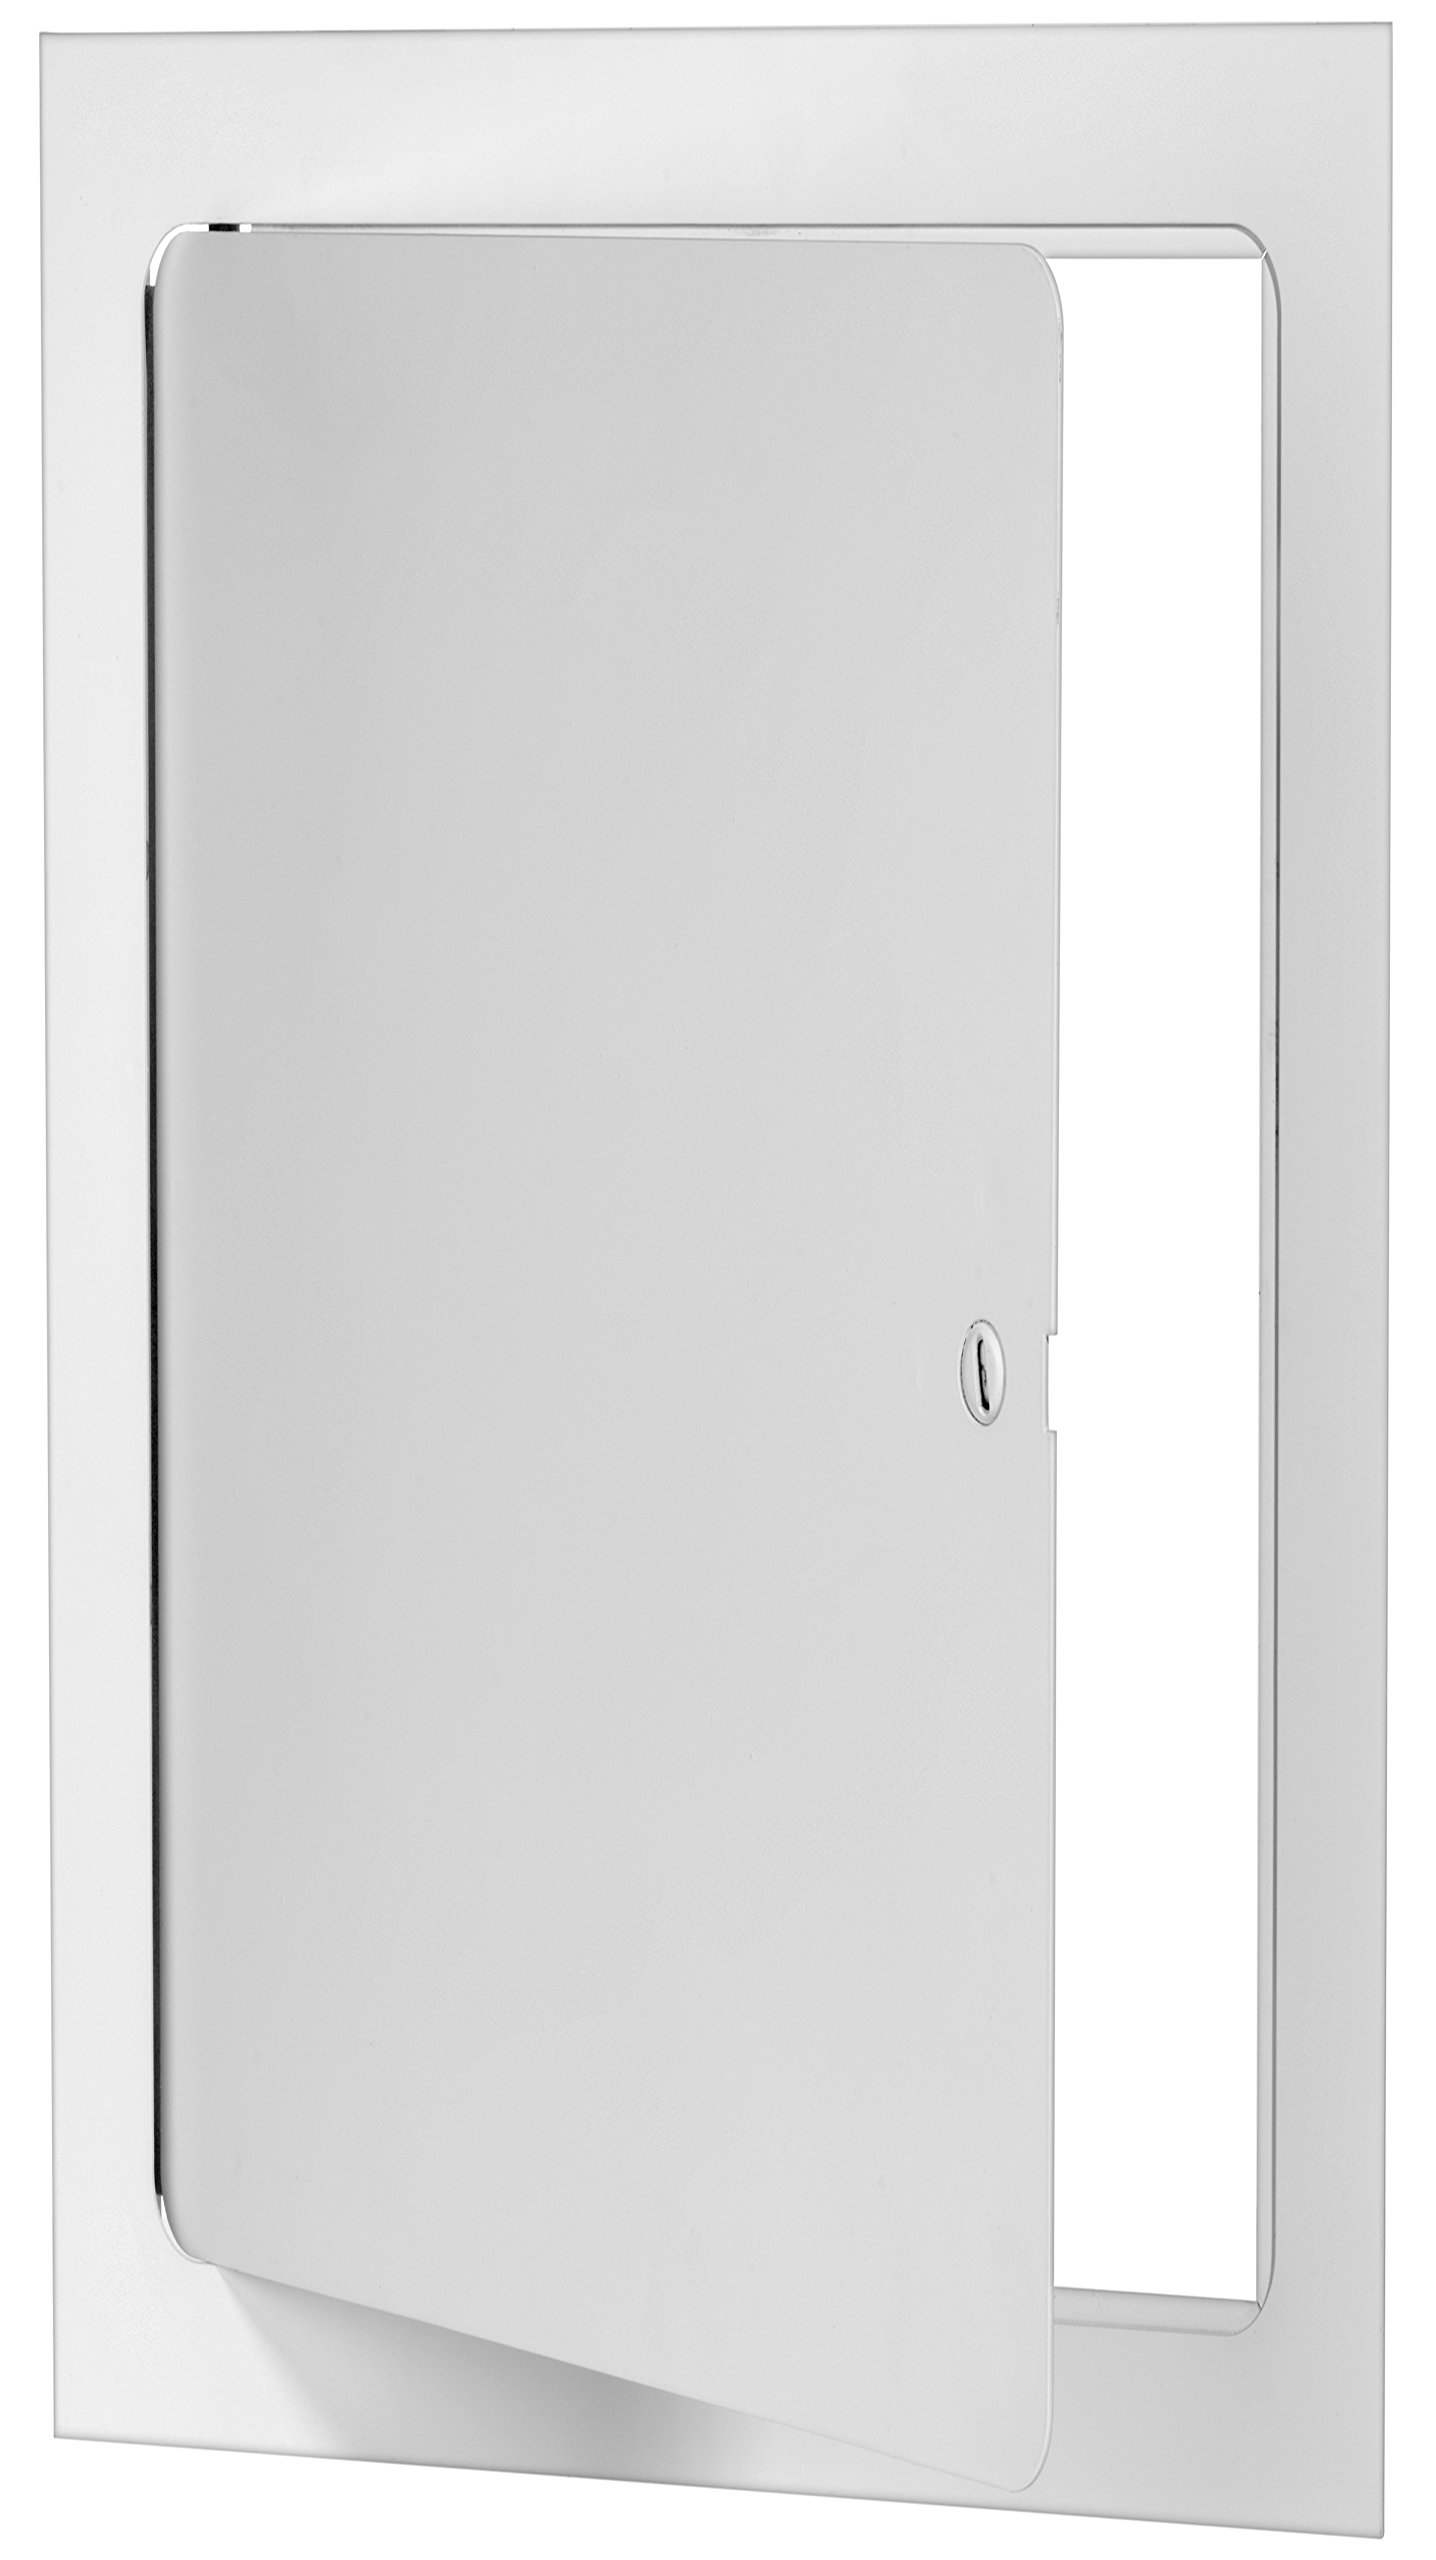 Premier 5000 Series Commercial Grade Steel Access Door, 12 x 24 Flush Universal Mount, White (Screwdriver Latch) by Premier Access Doors